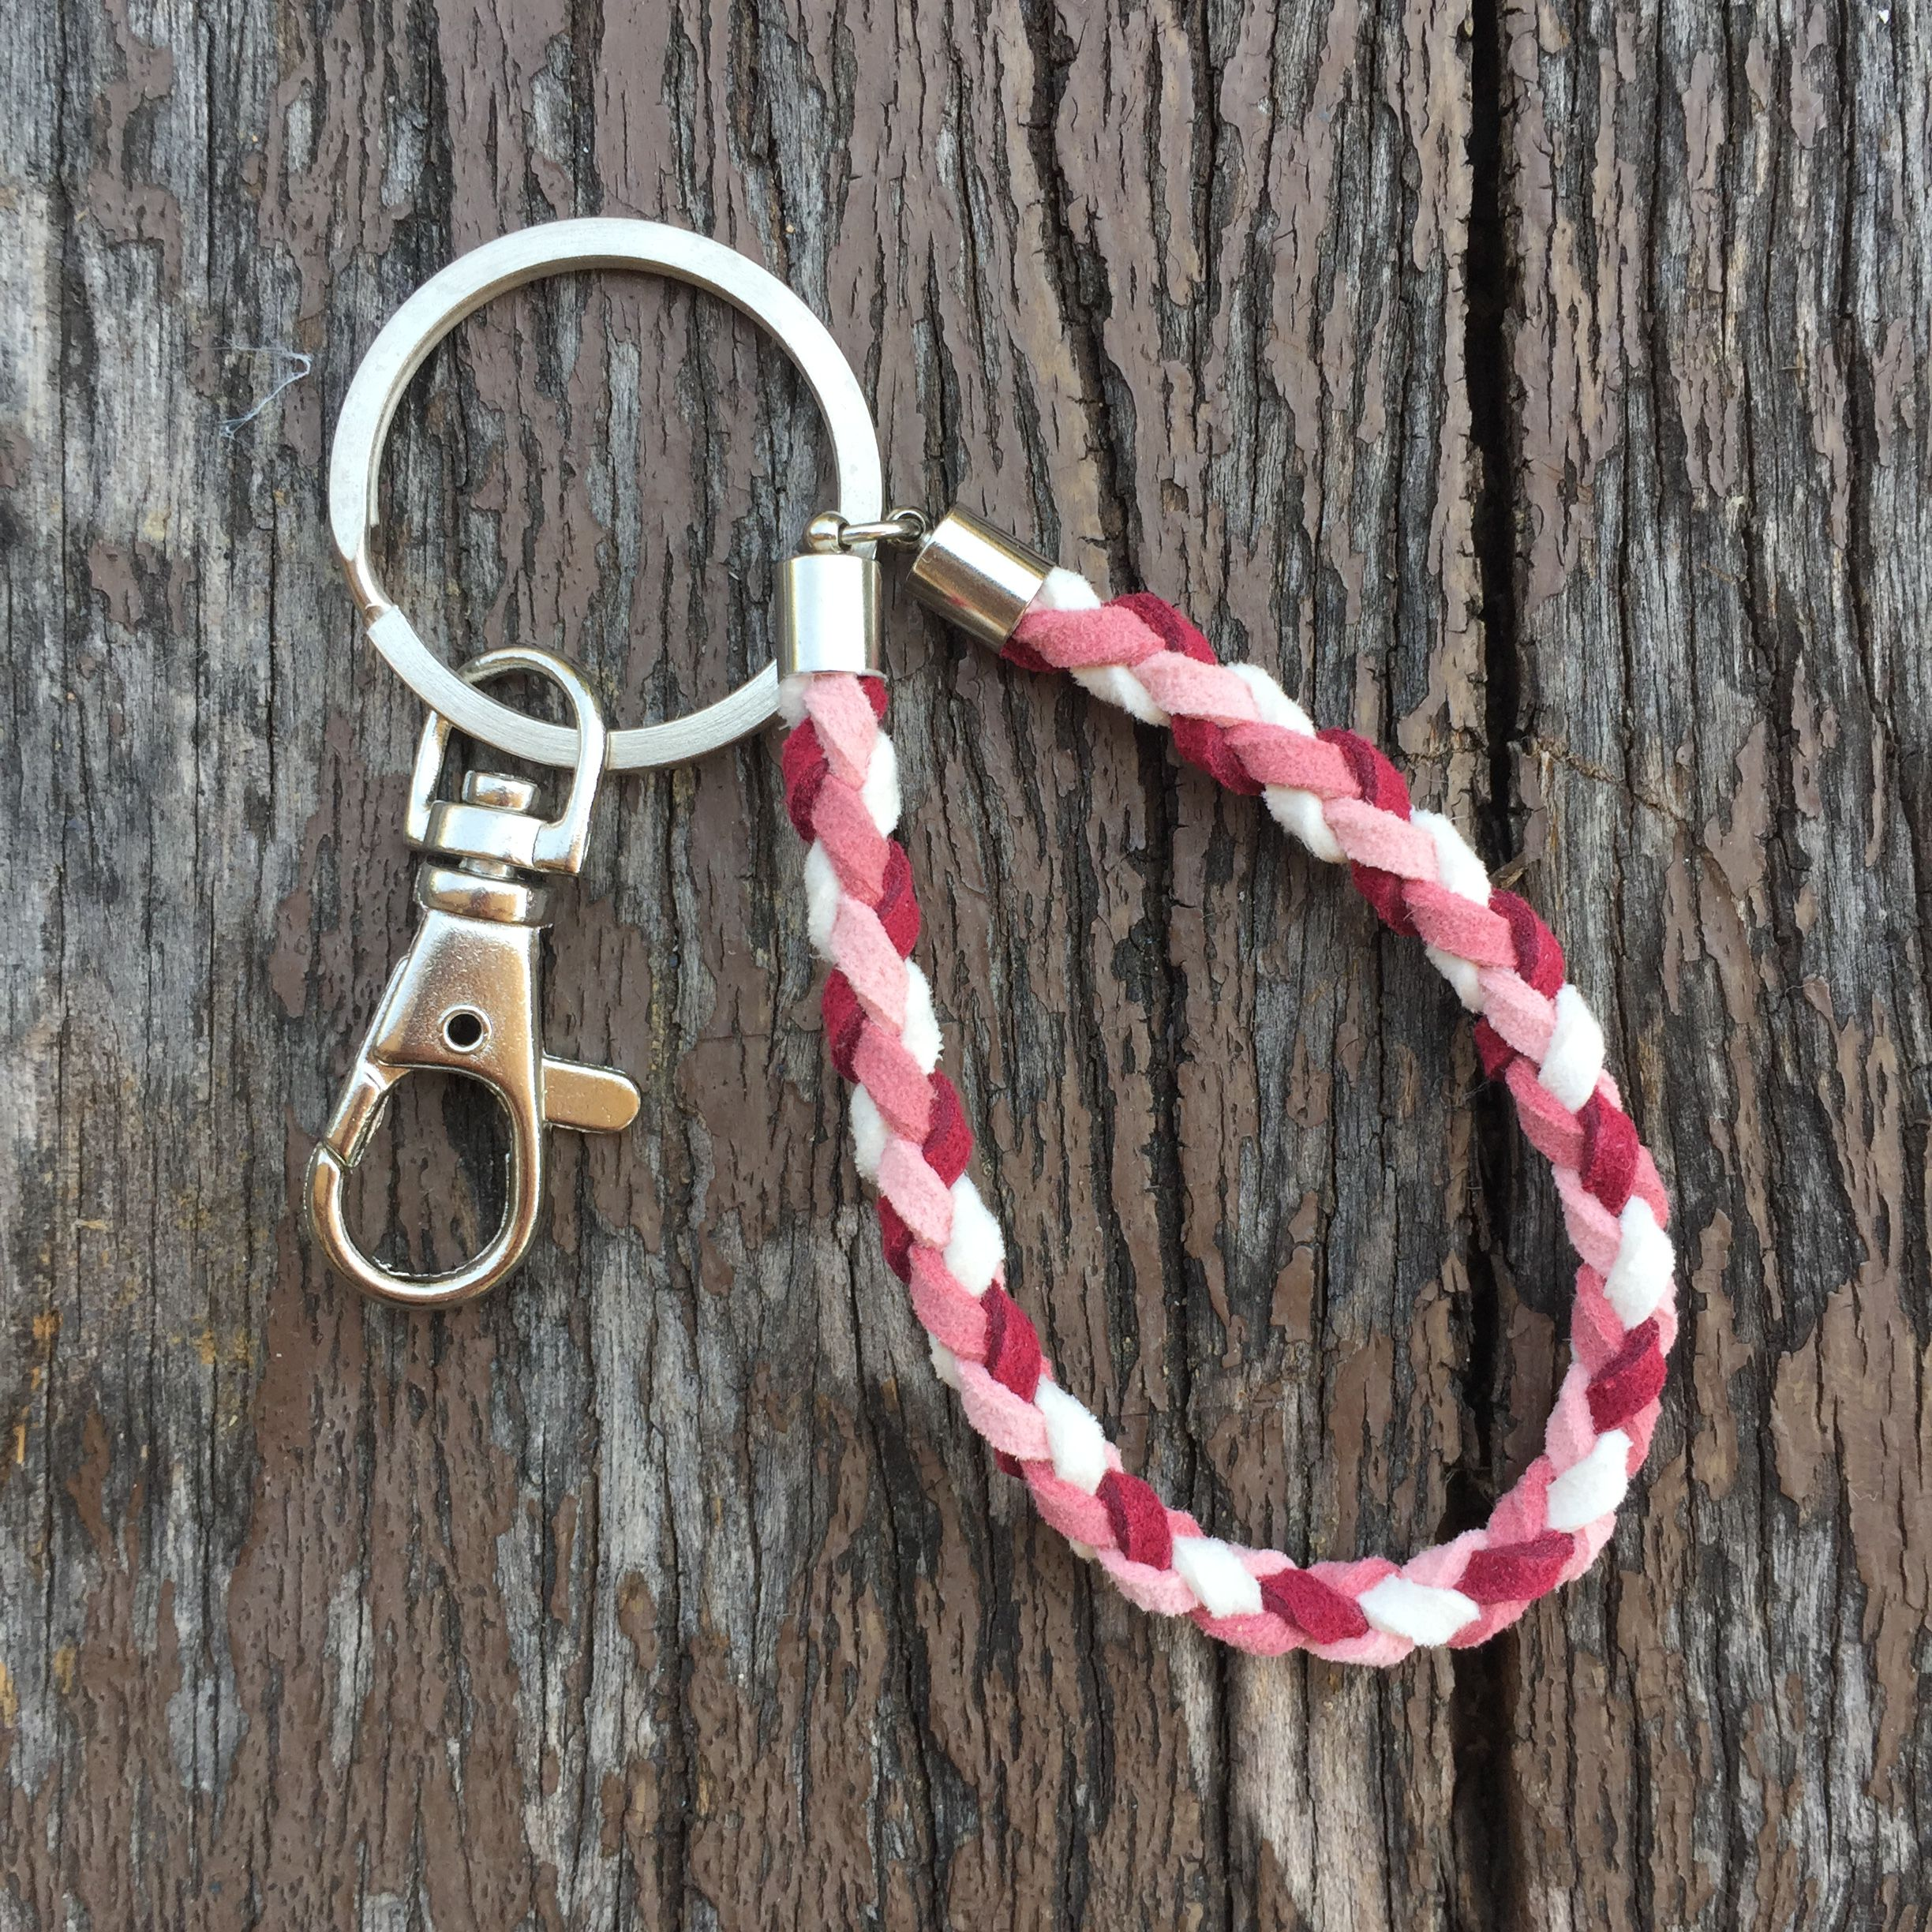 $6.9usd Handmade chamois knitting keychain with standard keyring and swivel clasp in pink. #keychain #handmade #crafts #diy #keyring